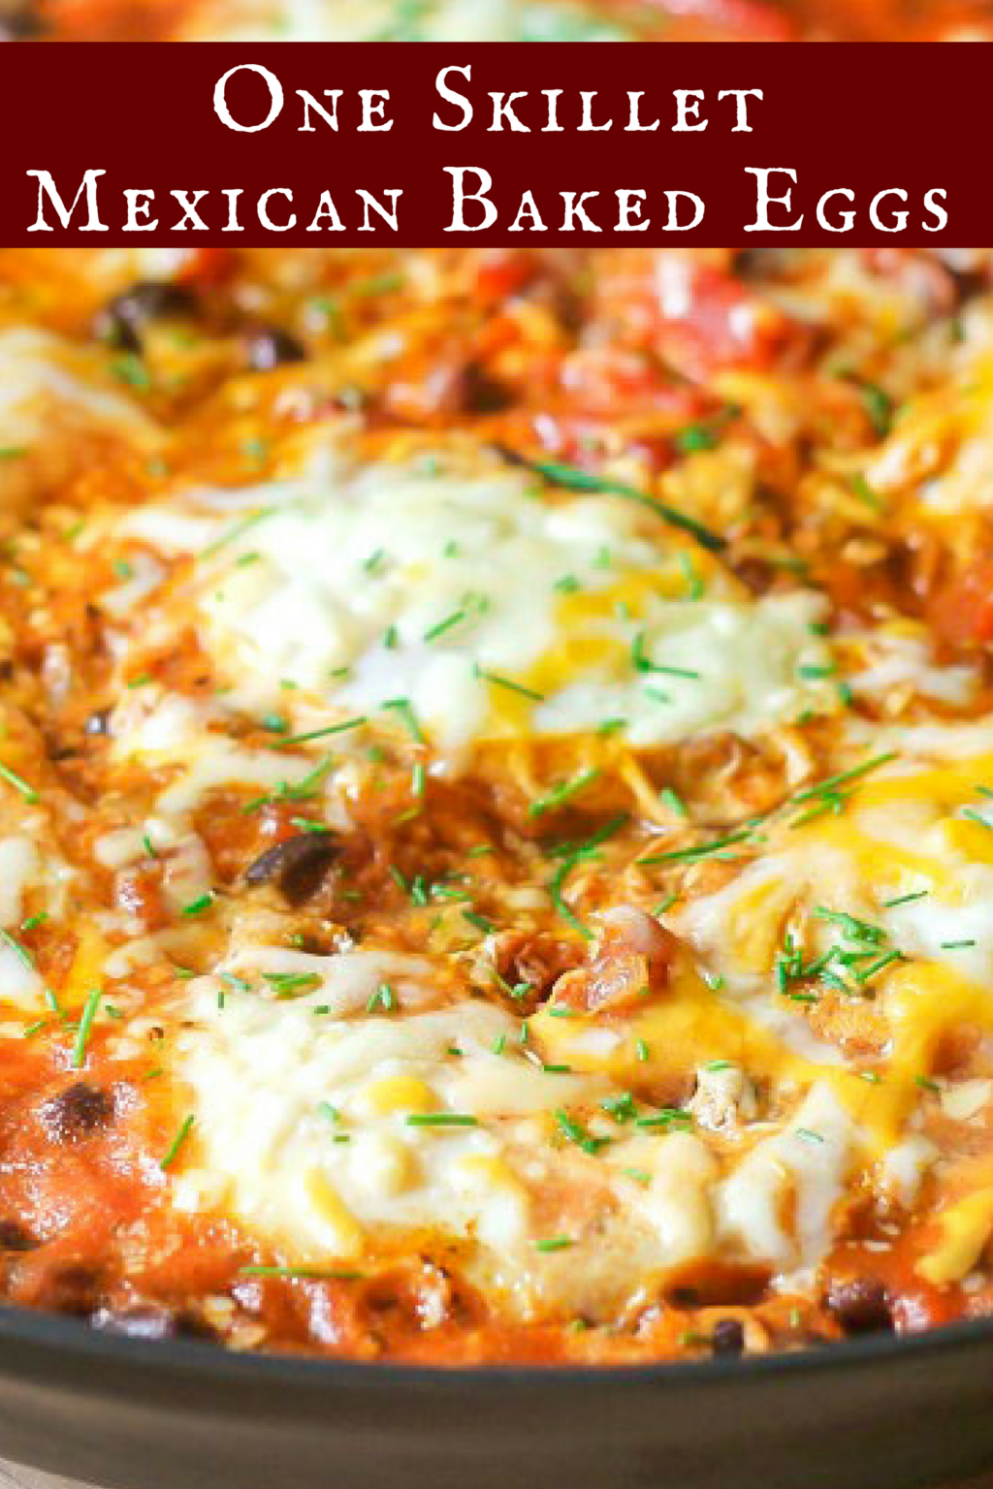 Mexican Baked Eggs (One Skillet) - Food Recipes For Breakfast